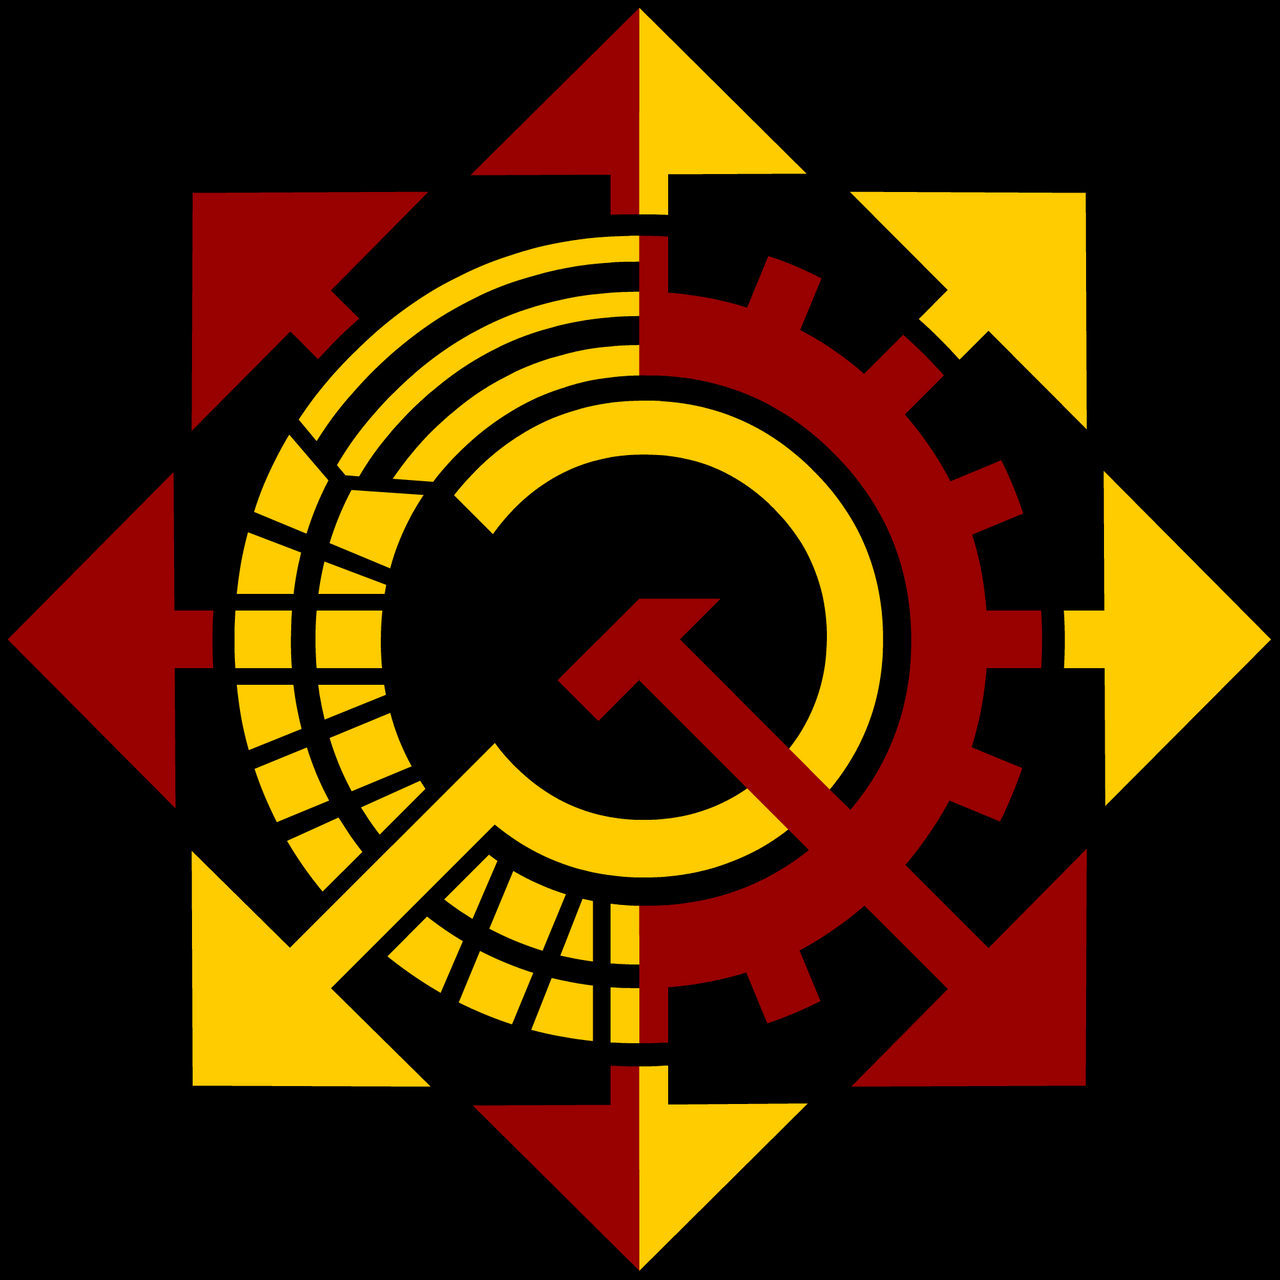 New symbols ideas on communism deviantart party9999999 19 1 alternate communist party of canada design by domain of the public biocorpaavc